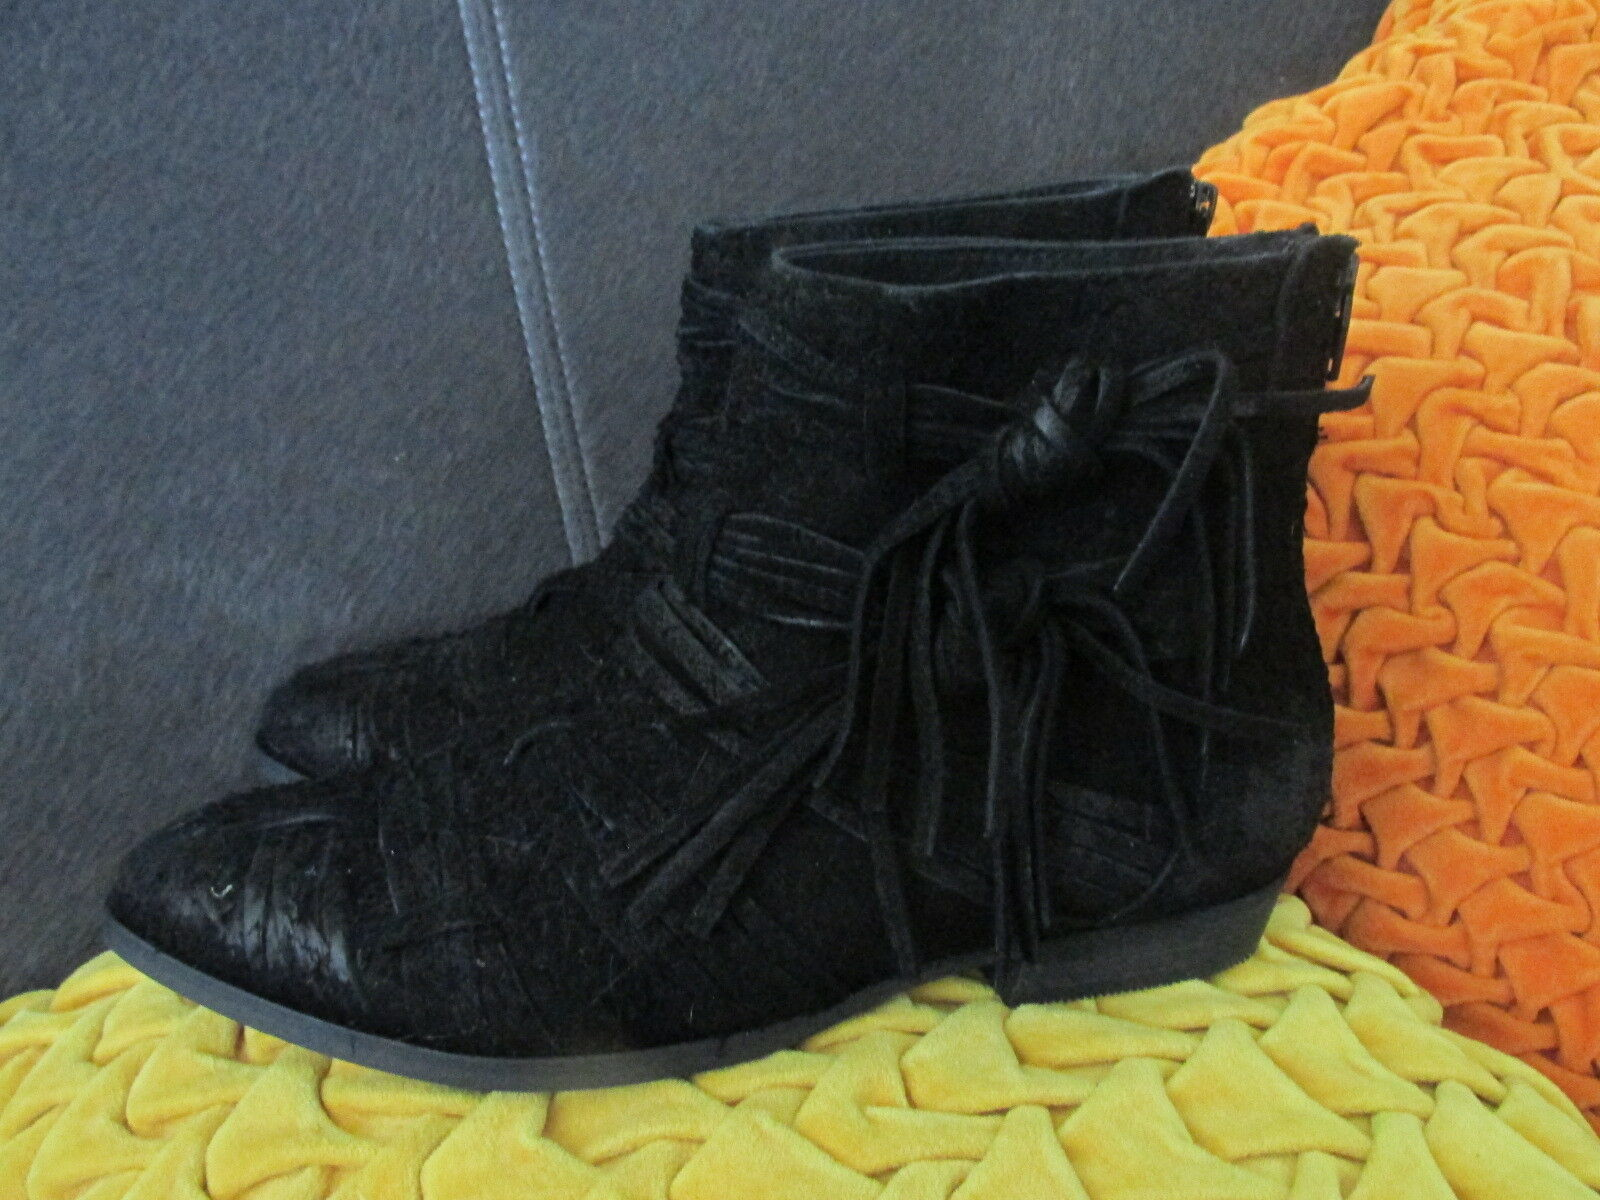 Free People Black Distressed Suede Decades Ankle Boots Booties US 7 NWOB